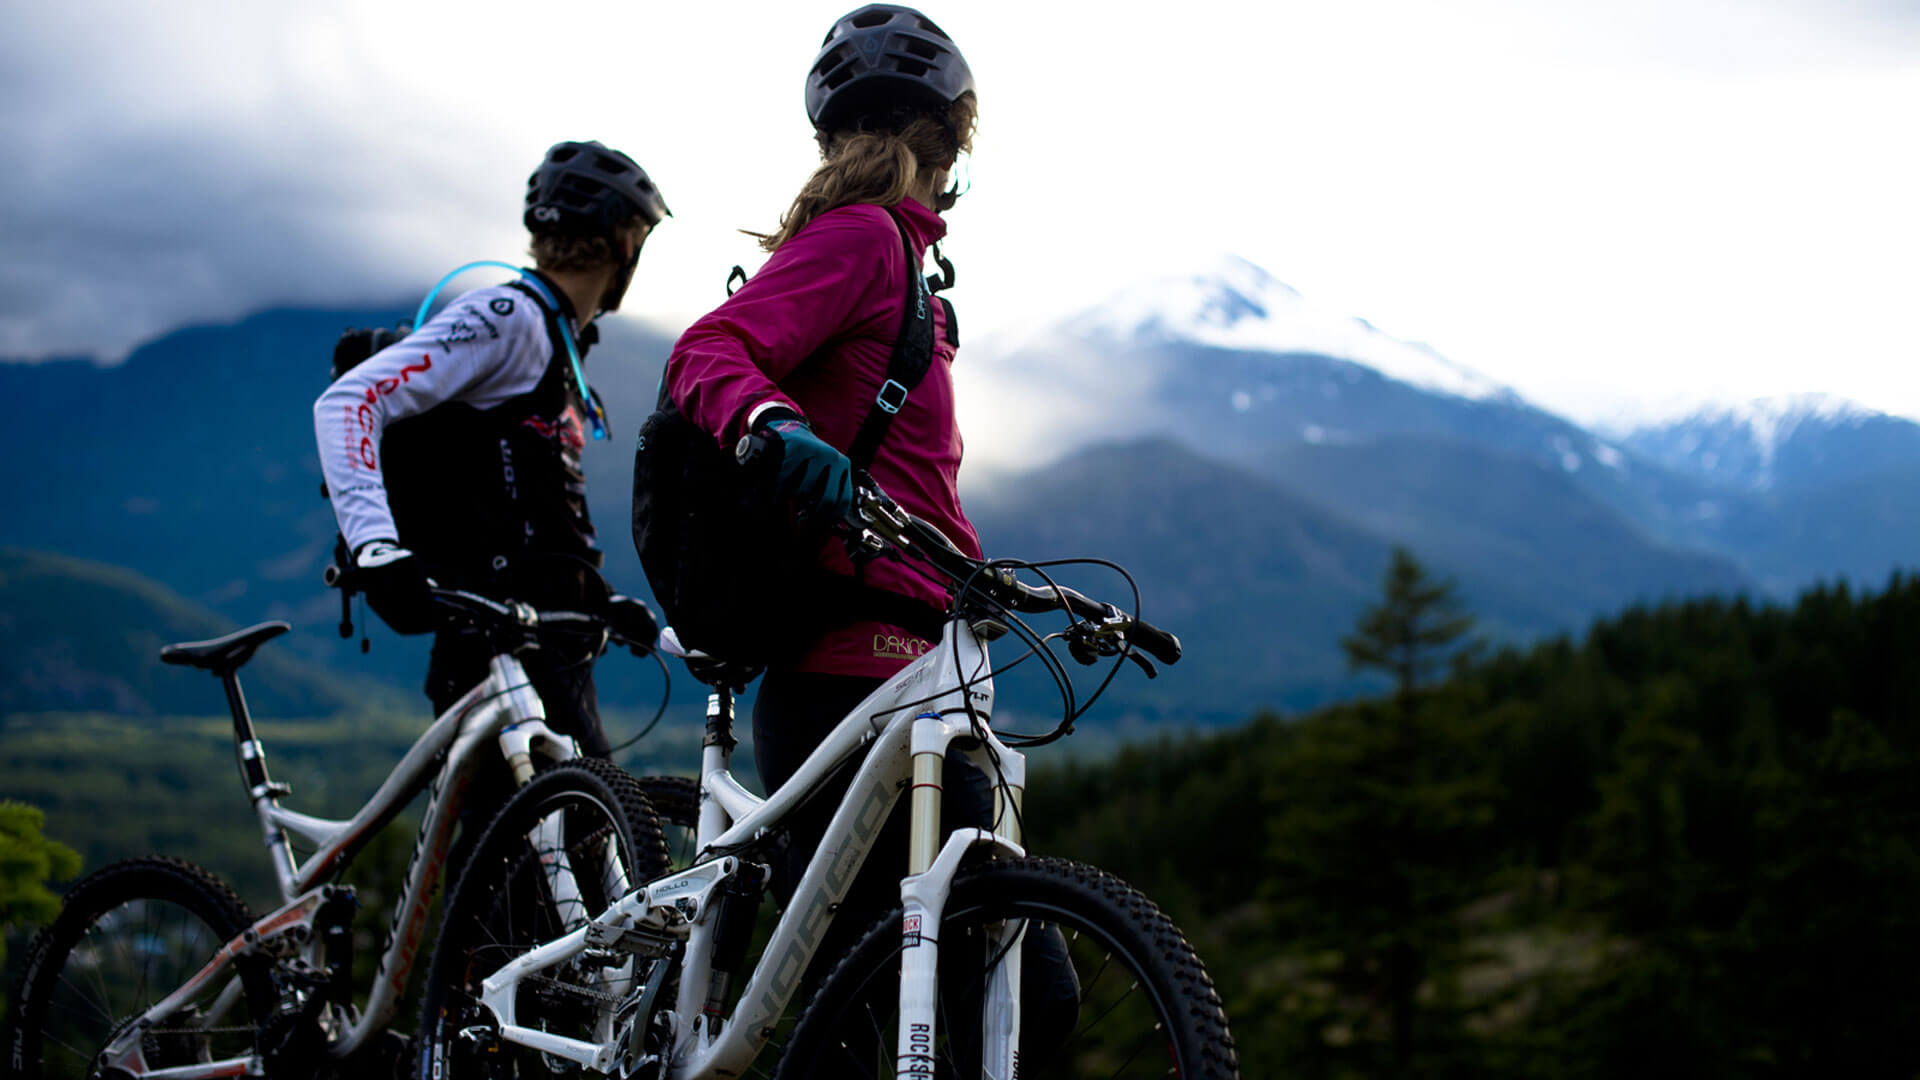 young male and female dressed in biking gear looking at mountain